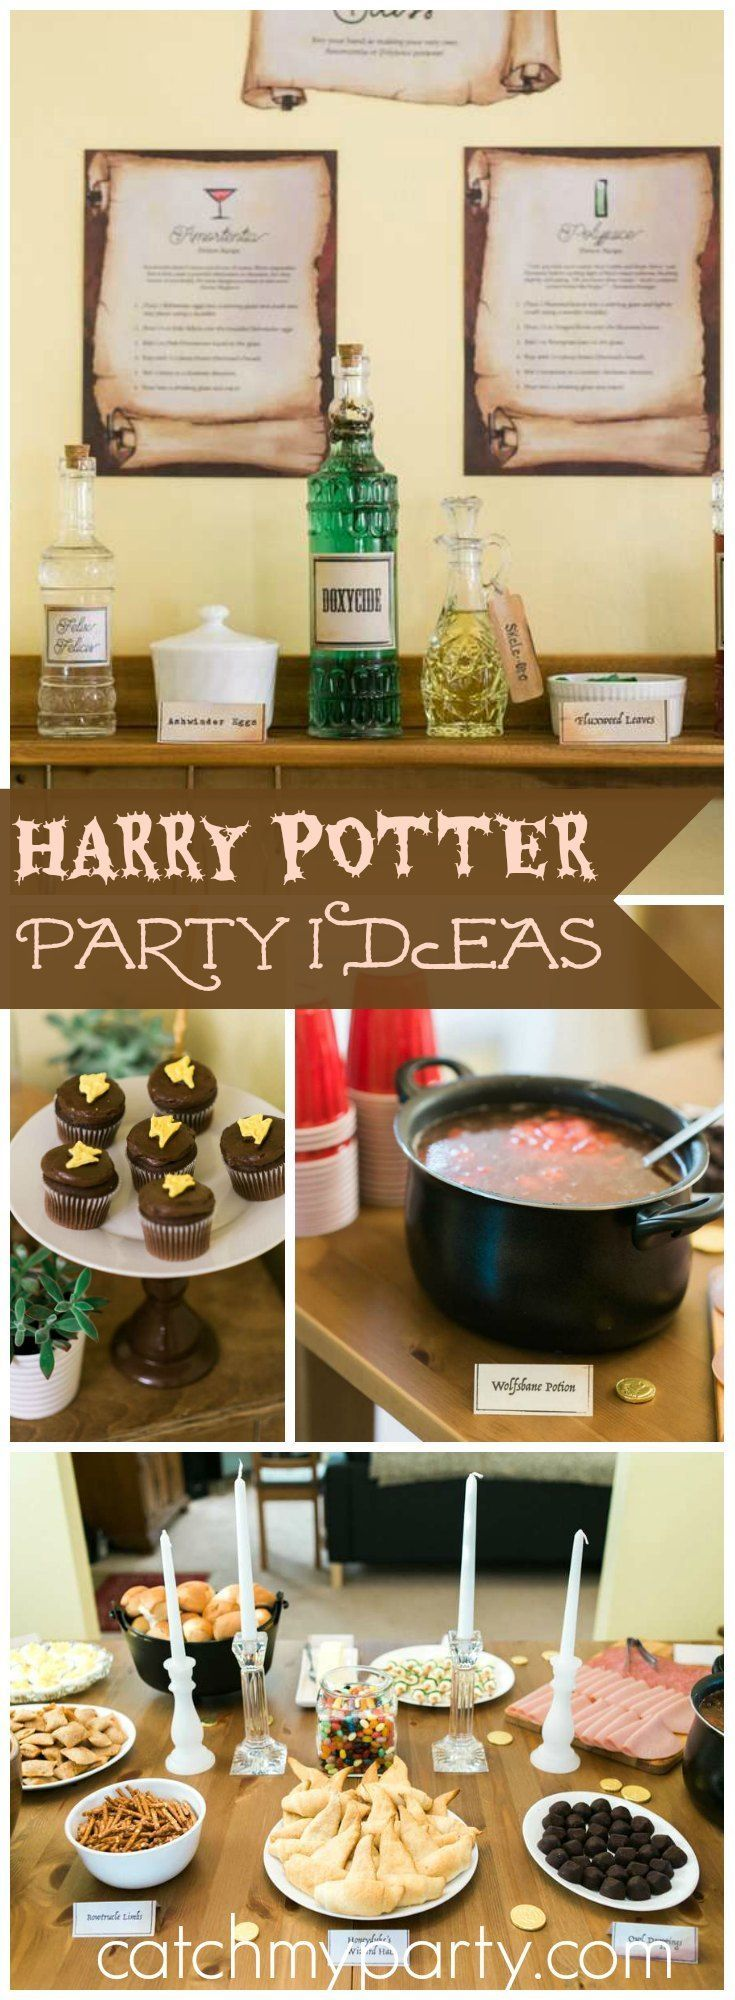 You have to see this amazing Harry Potter birthday party!                                                                                                                                                                                 More